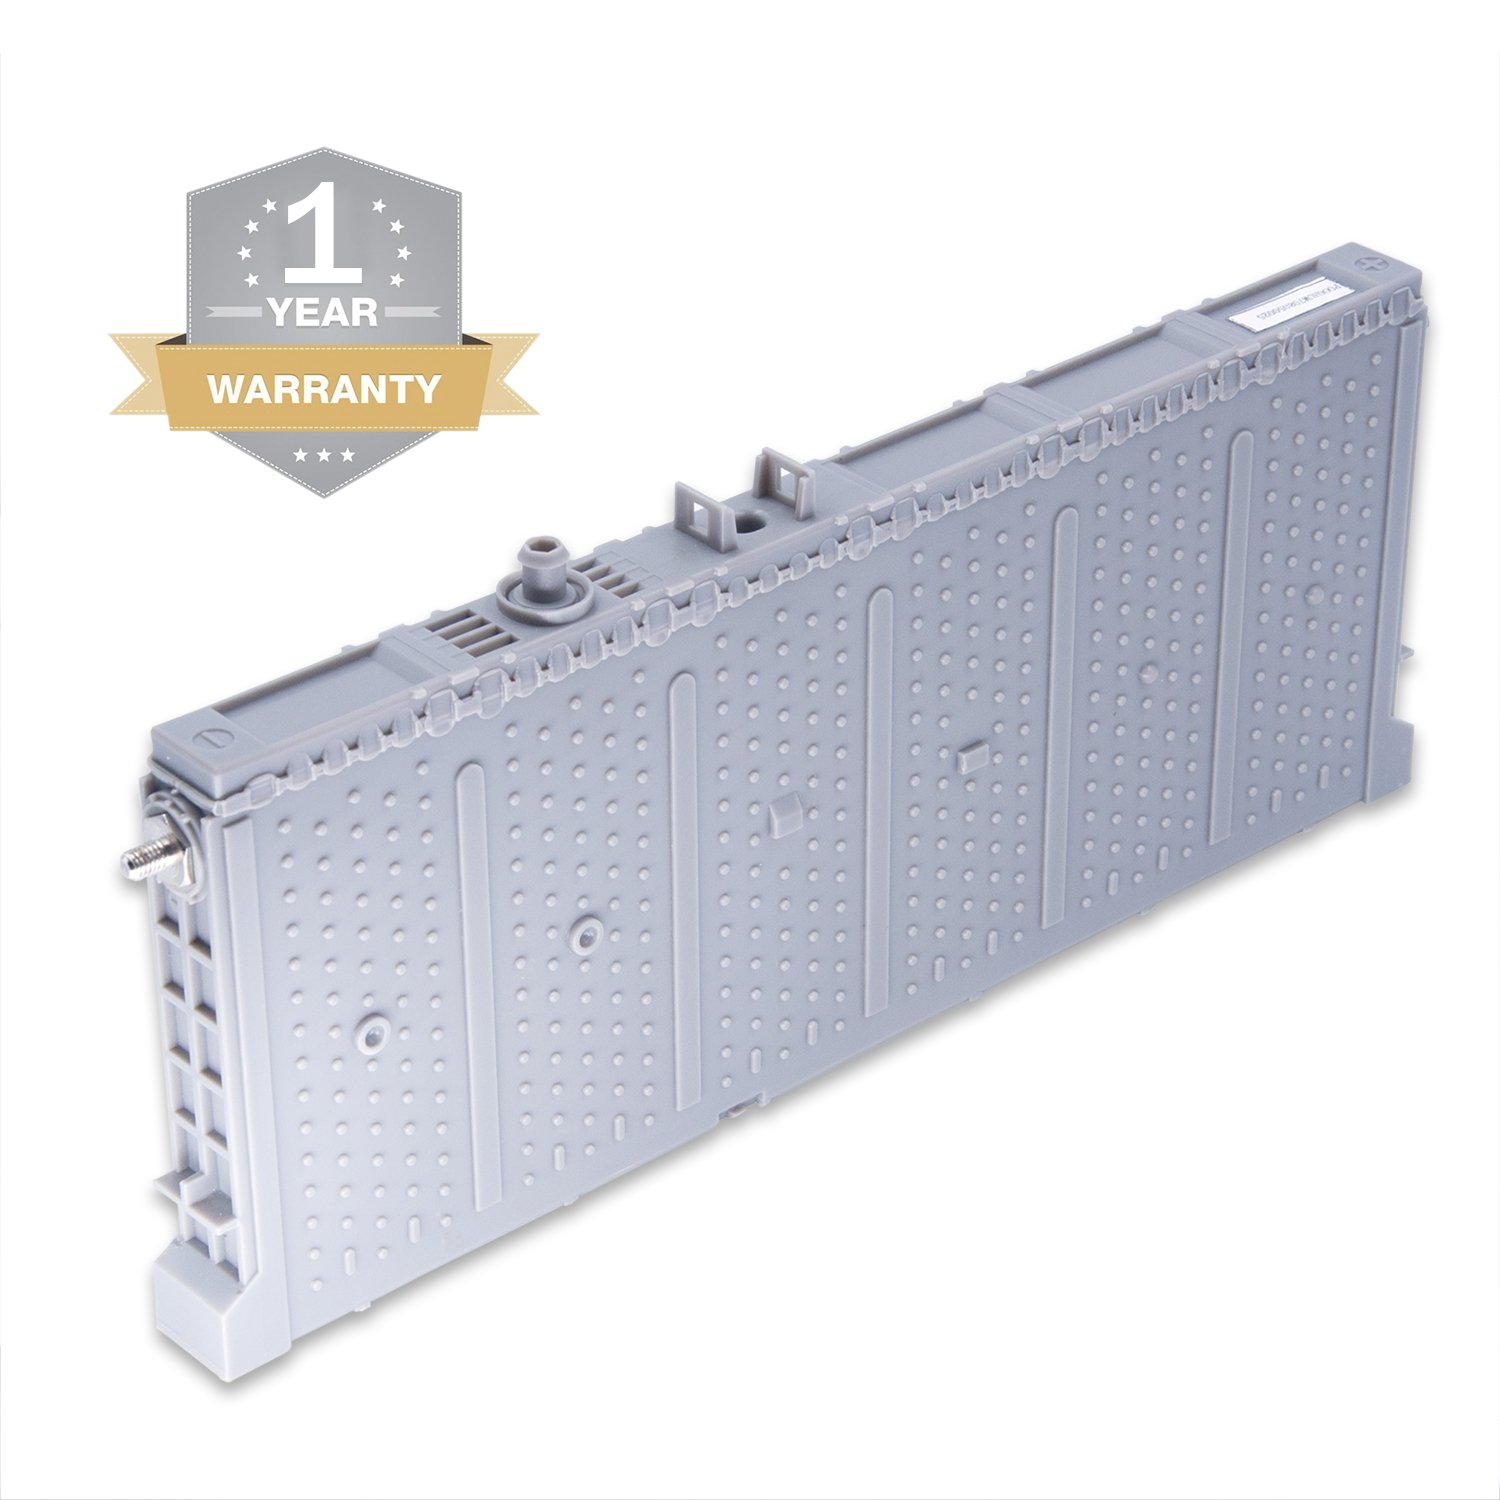 Amazon.com: Toyota Prius Hybrid Battery Pack - Replacement HYBRID Module  Parts For Toyota Prius Camry Nissan Altima Lexus GS450H Lexus LS250H Chevy  Tahoe ...